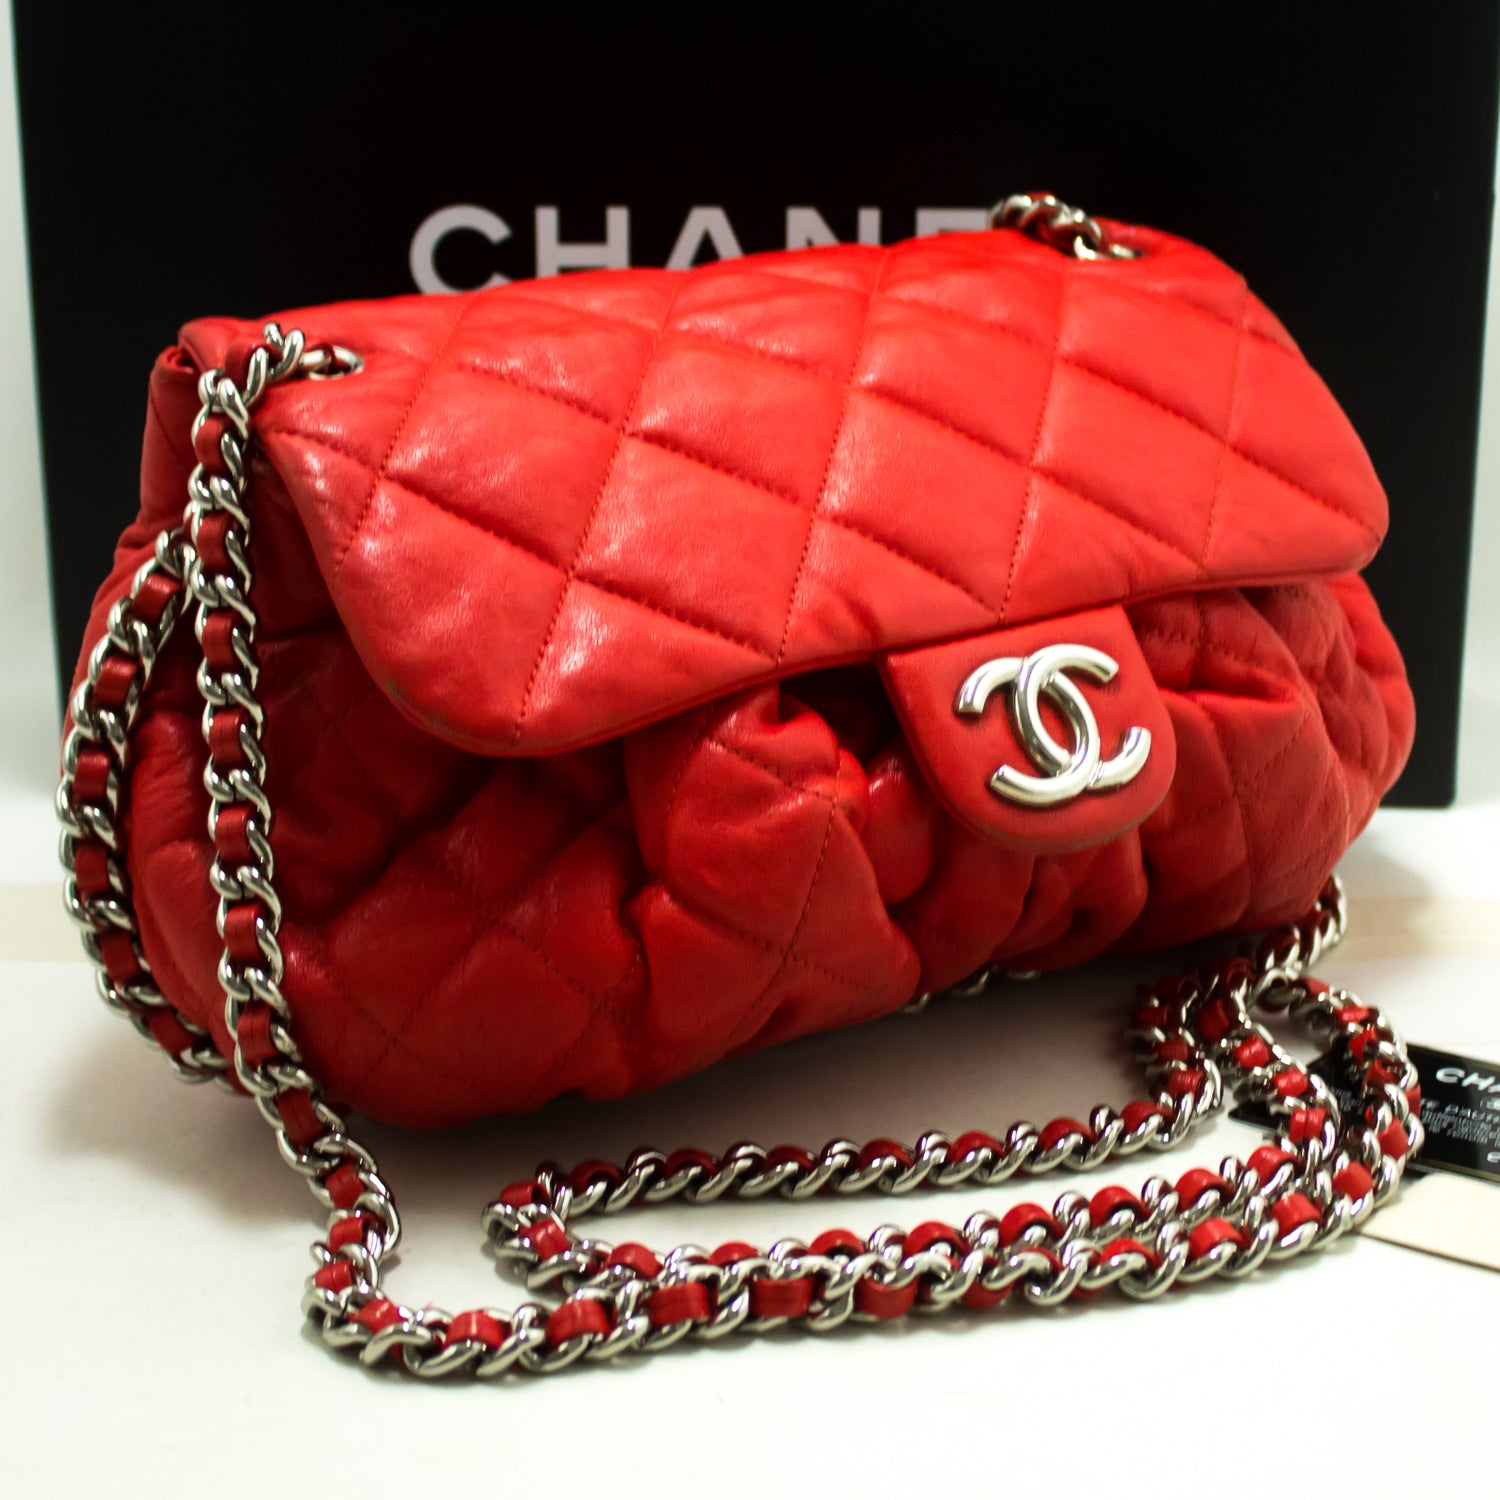 685f90defc8c ... CHANEL Red Chain Around Shoulder Bag Crossbody Quilted Flap Lamb  m86-Chanel-hannari- ...